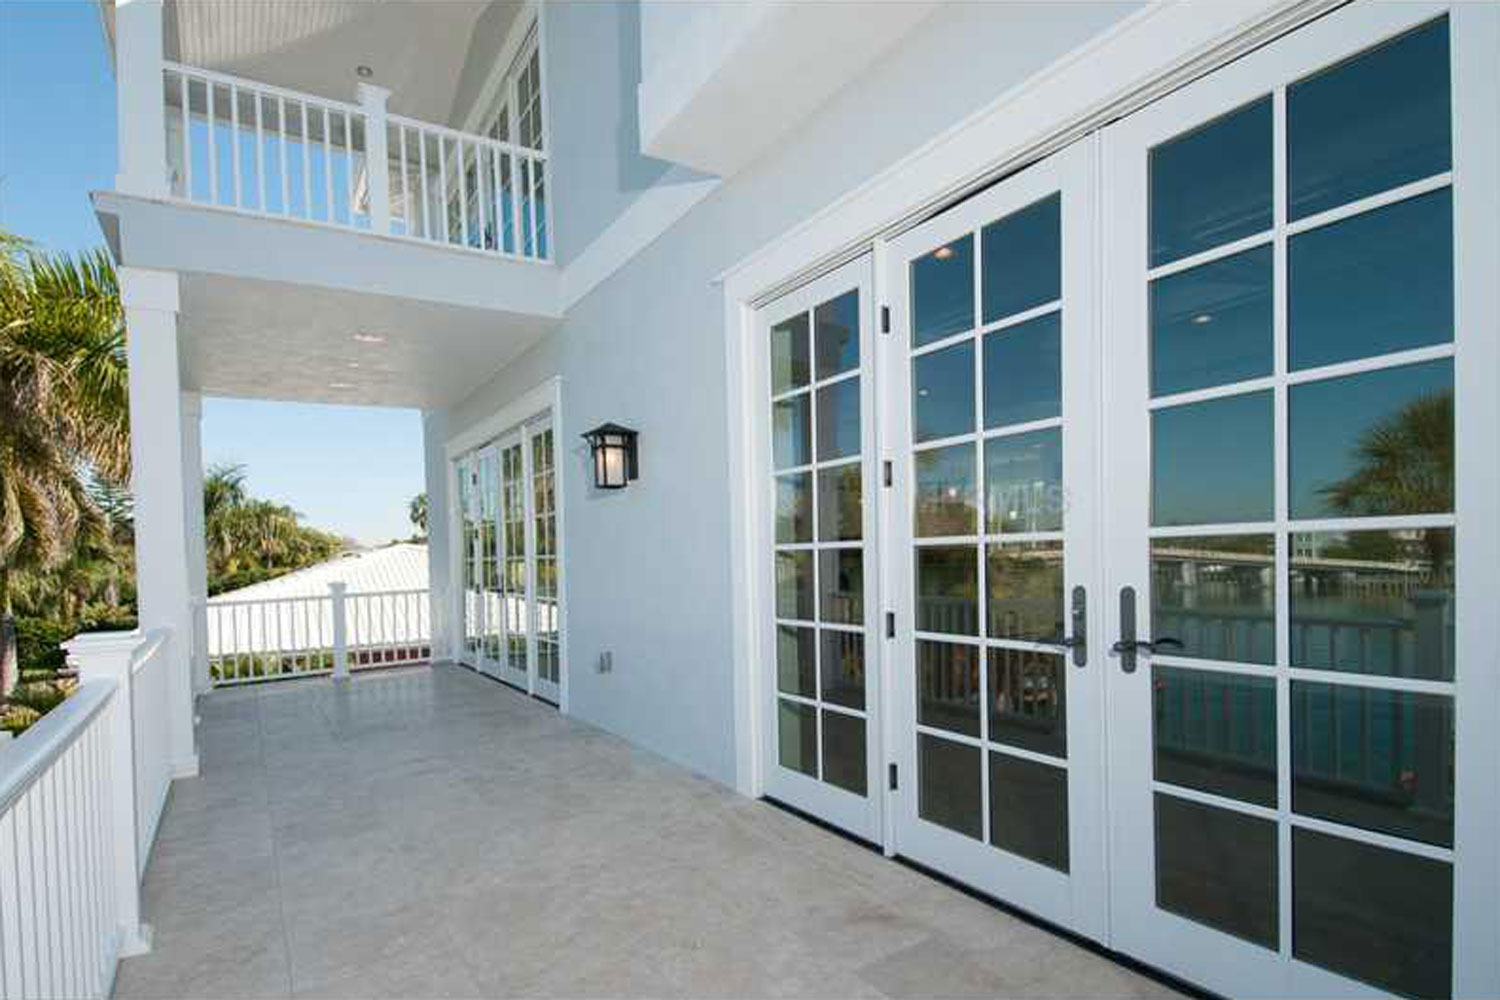 Generous decks on the upper floors and roof take advantage of sunset views over the Gulf.